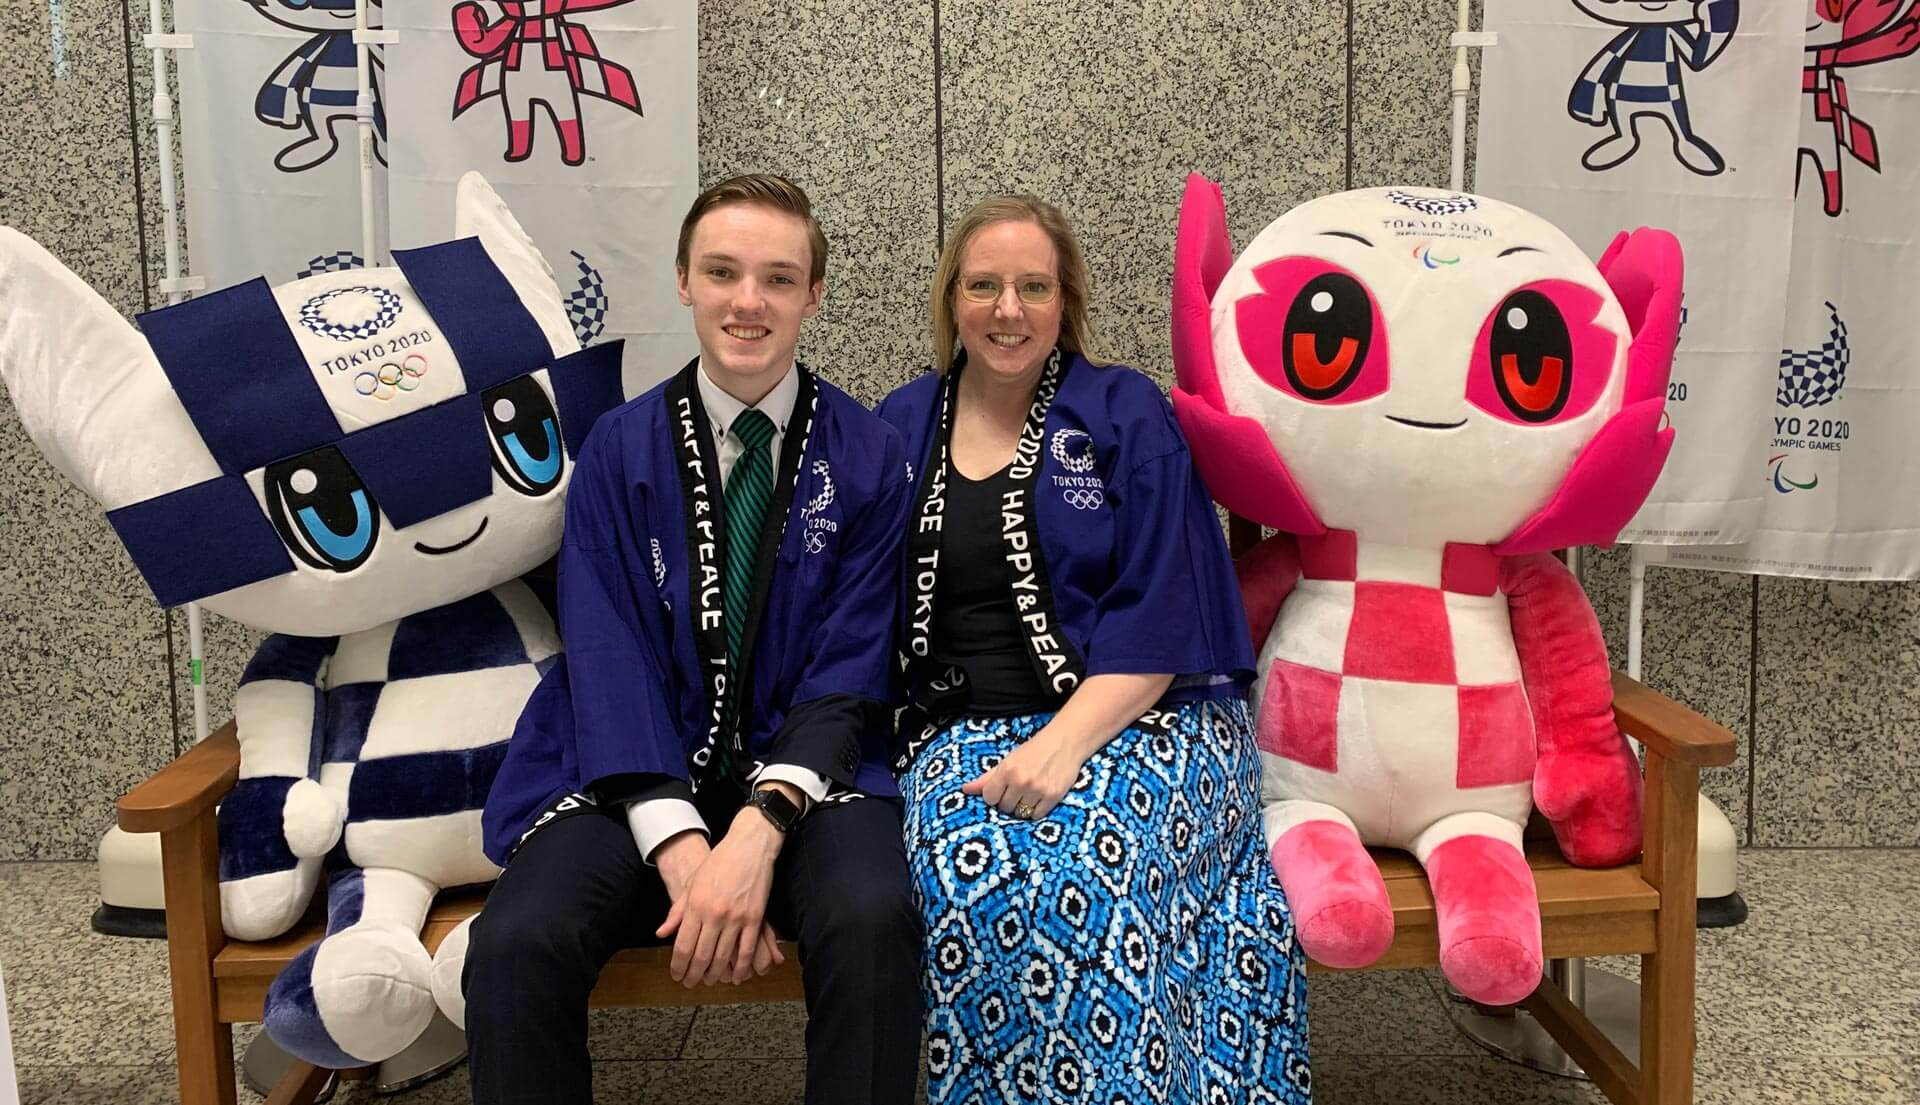 A Teacher and Her Son Sit Between the Olympic Mascots